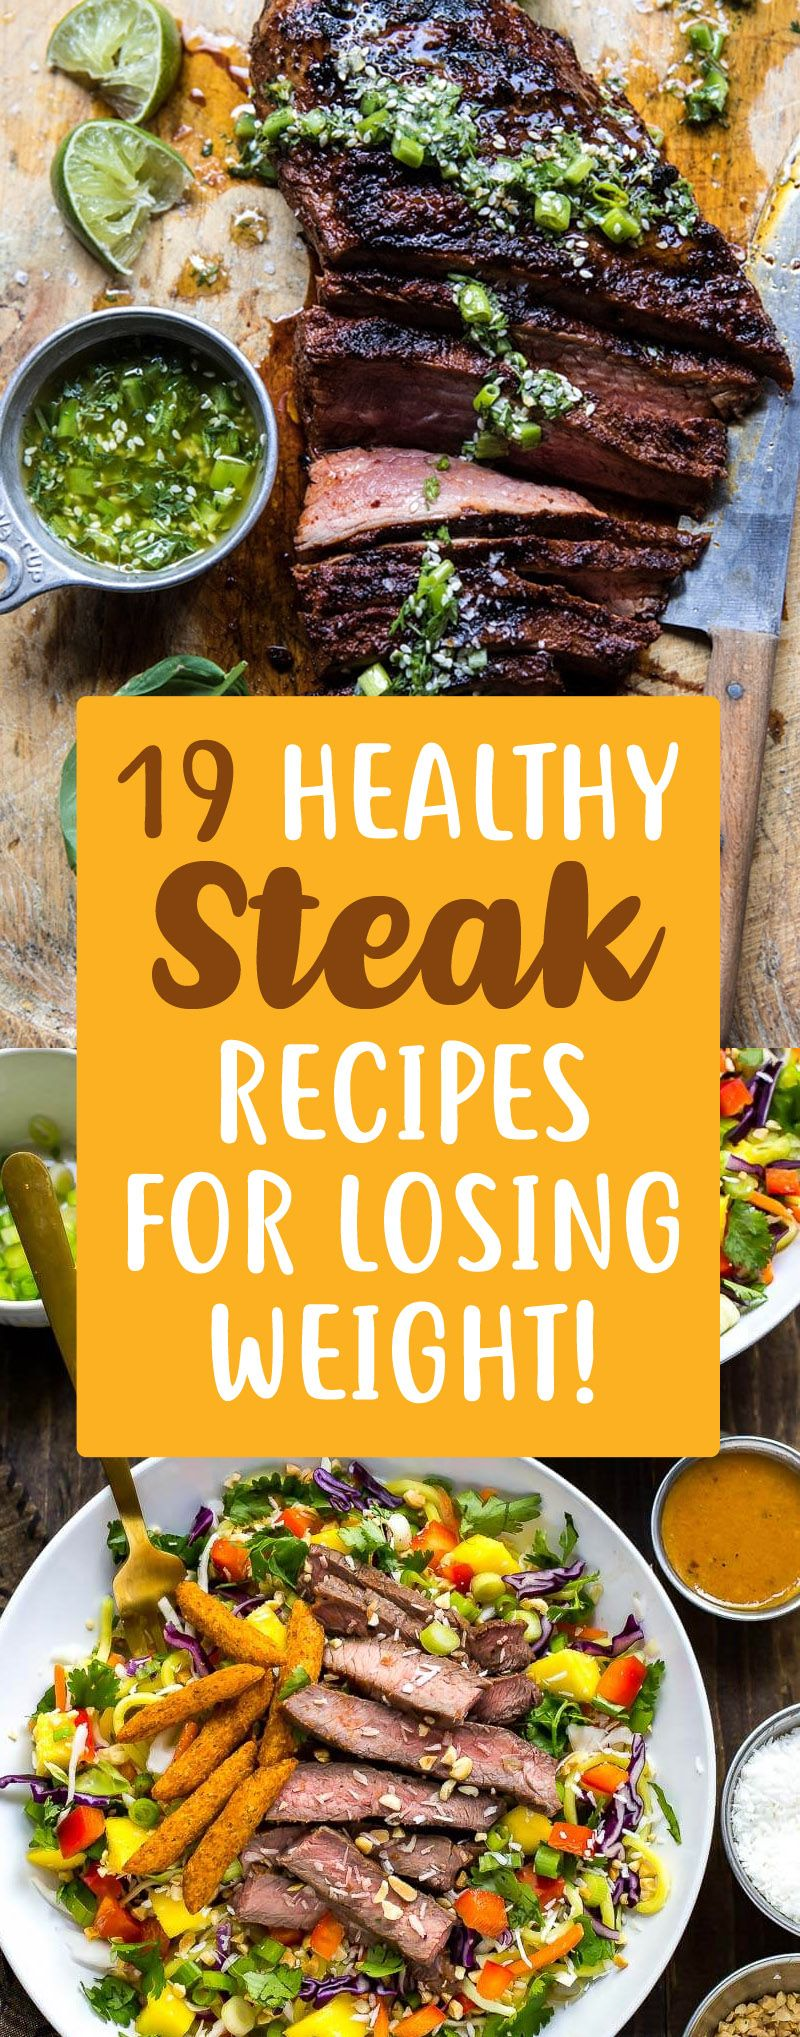 19 Weight Loss Steak Recipes That Are Packed Full Of Protein! images